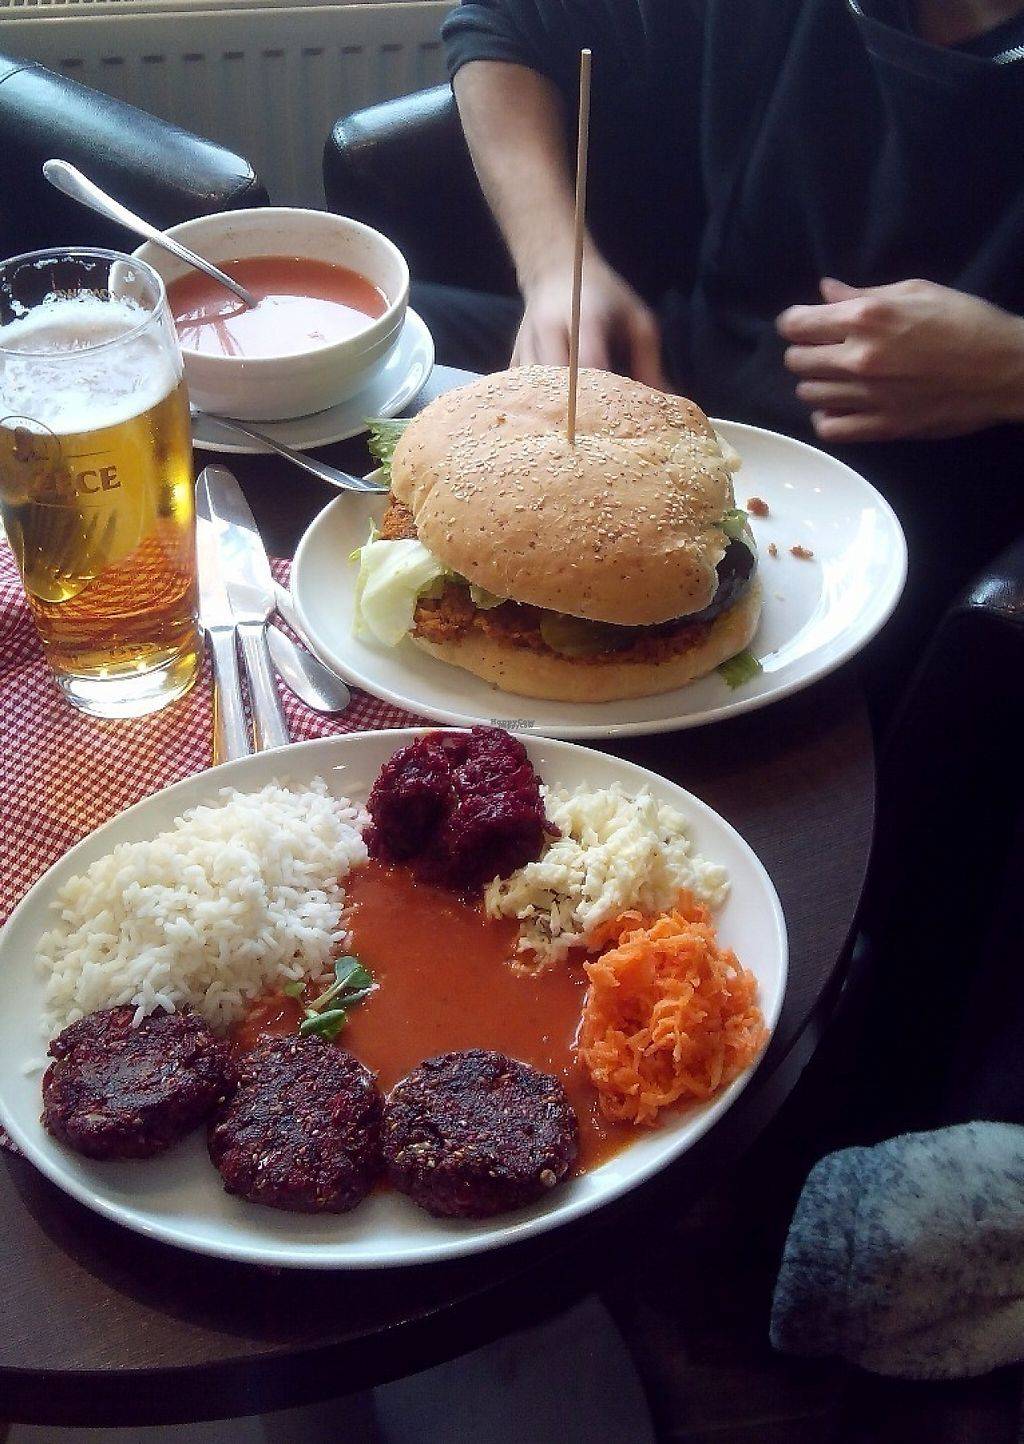 """Photo of Mountain Bar  by <a href=""""/members/profile/bdzsfi"""">bdzsfi</a> <br/>Fastburger and Beetroot kotlet <br/> February 2, 2017  - <a href='/contact/abuse/image/67678/221370'>Report</a>"""